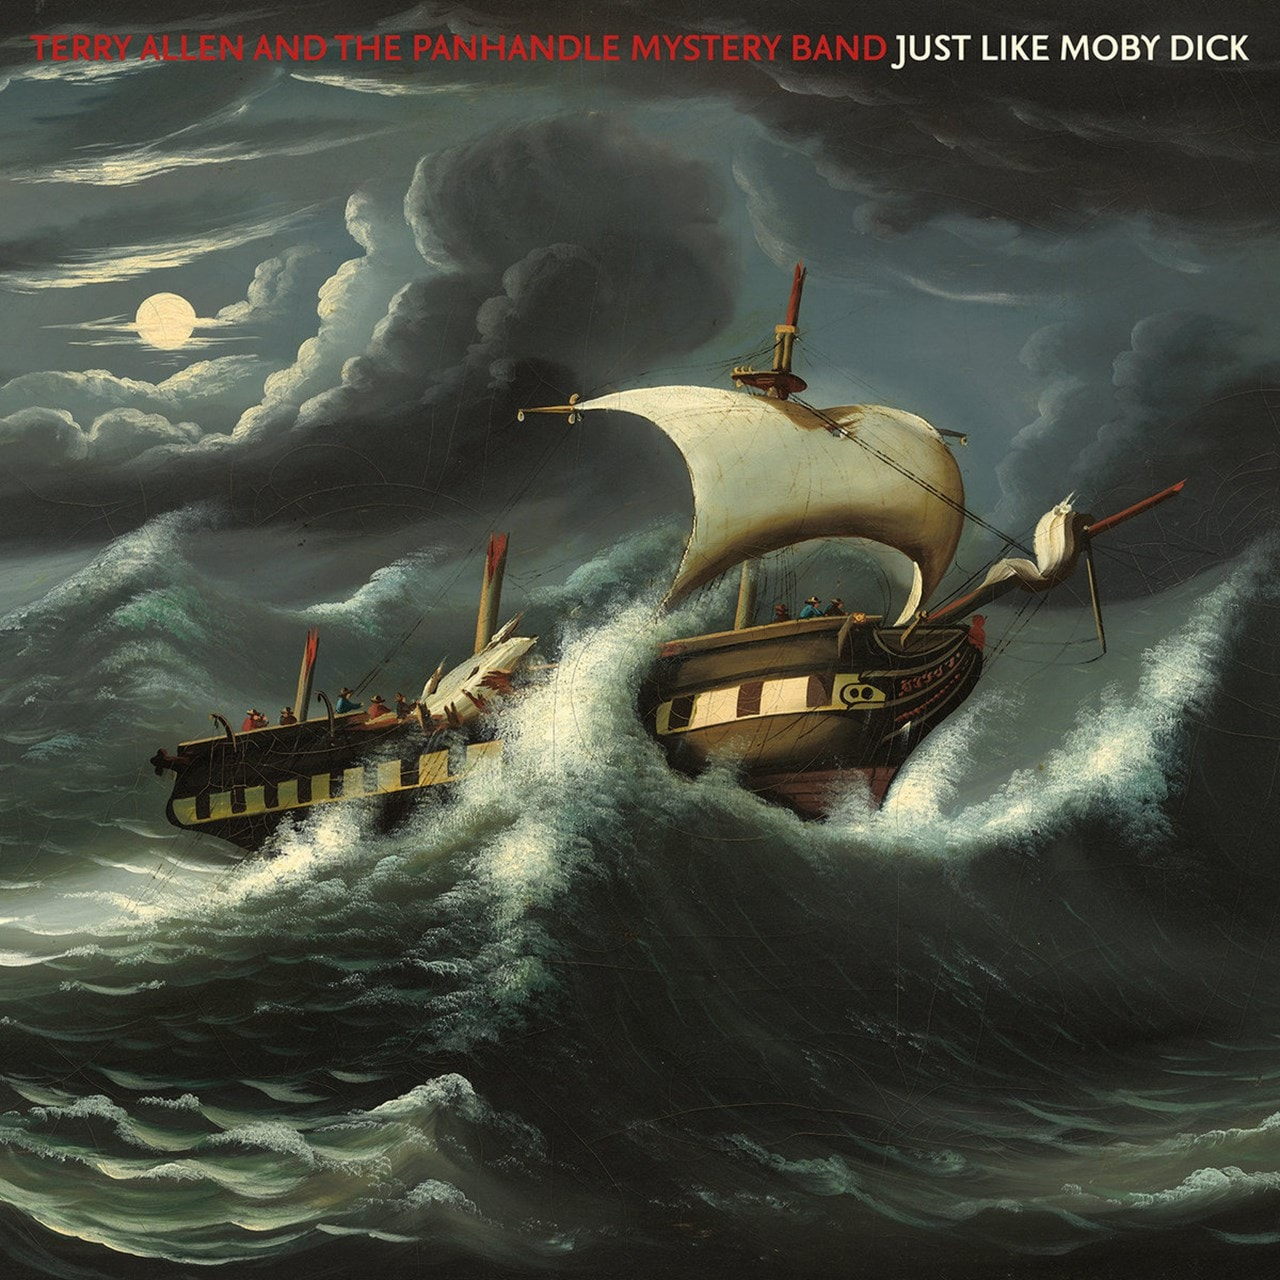 Just Like Moby Dick - 1